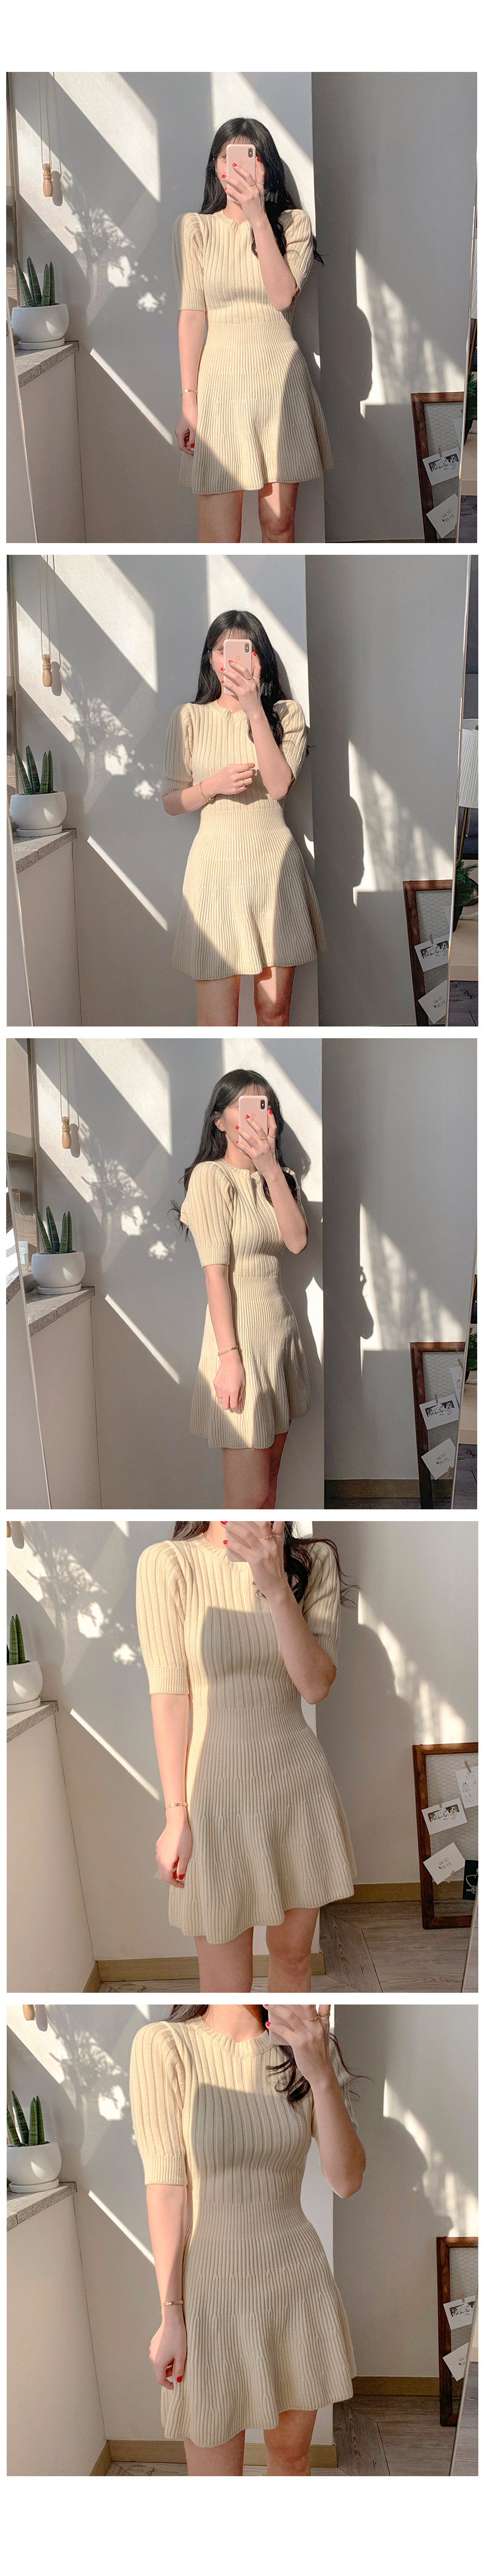 Funny Goliath Knit Dress 3 color